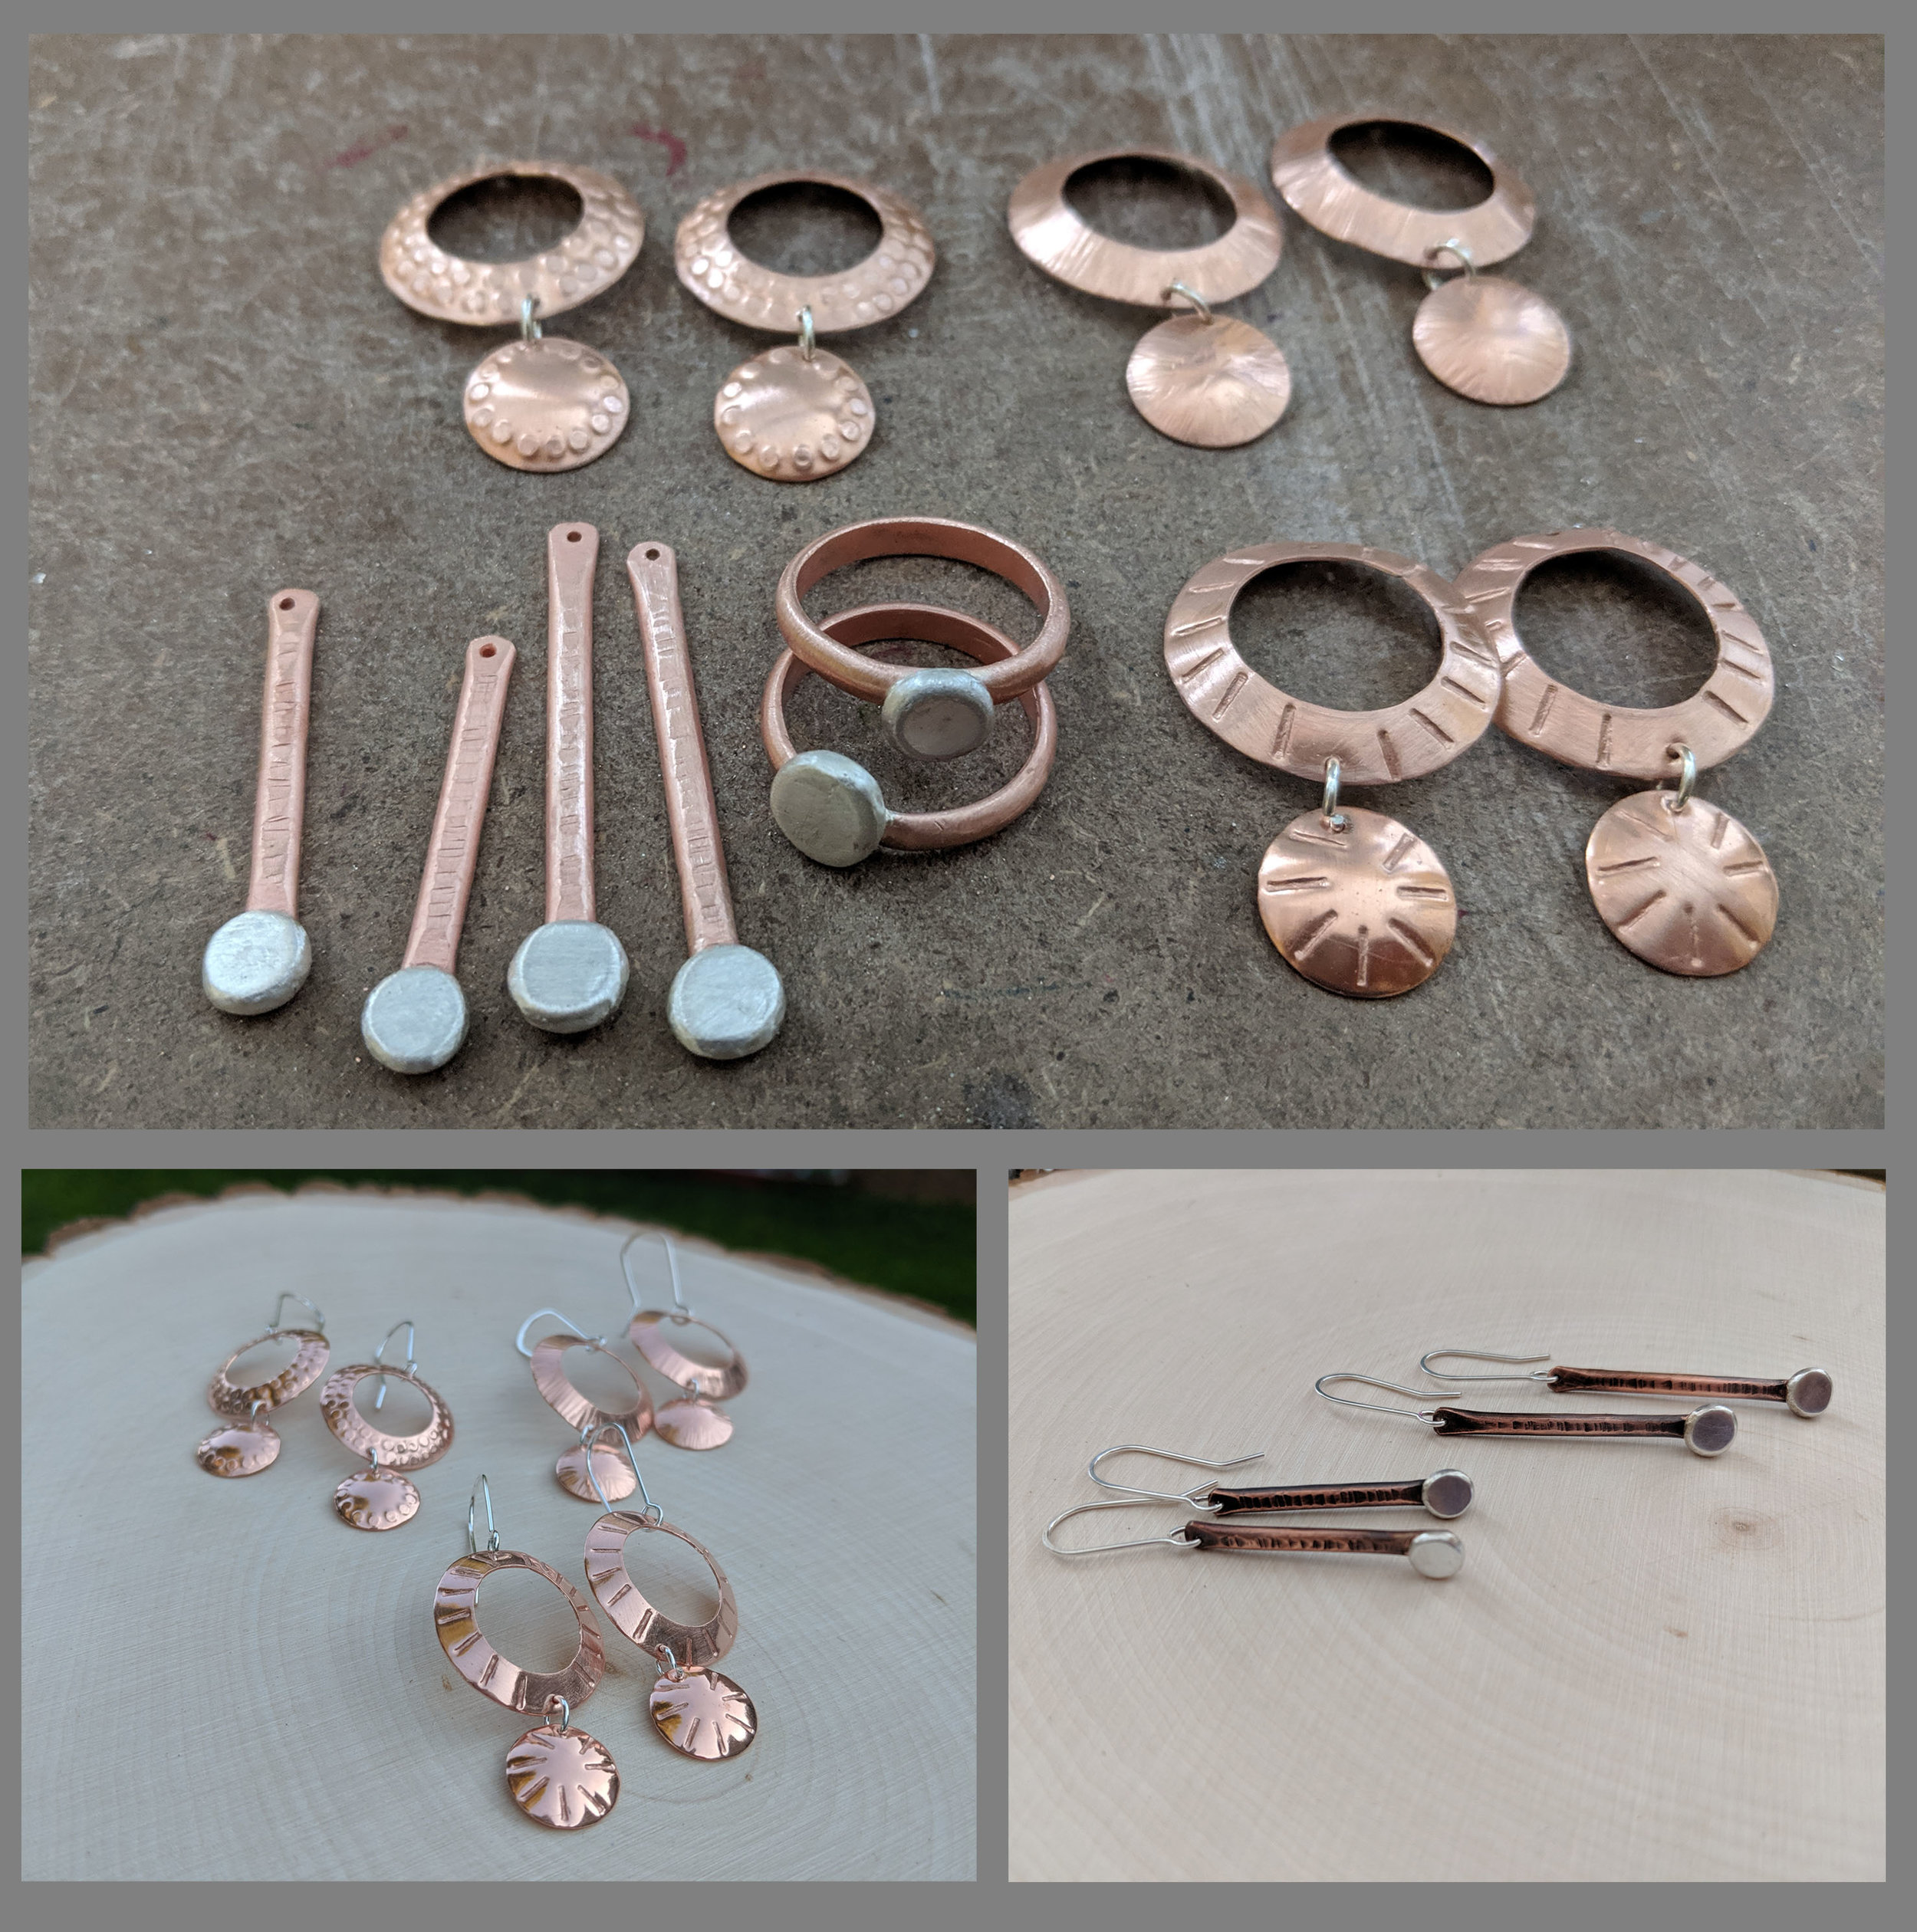 At top, earrings and rings in progress; below, finished earrings.